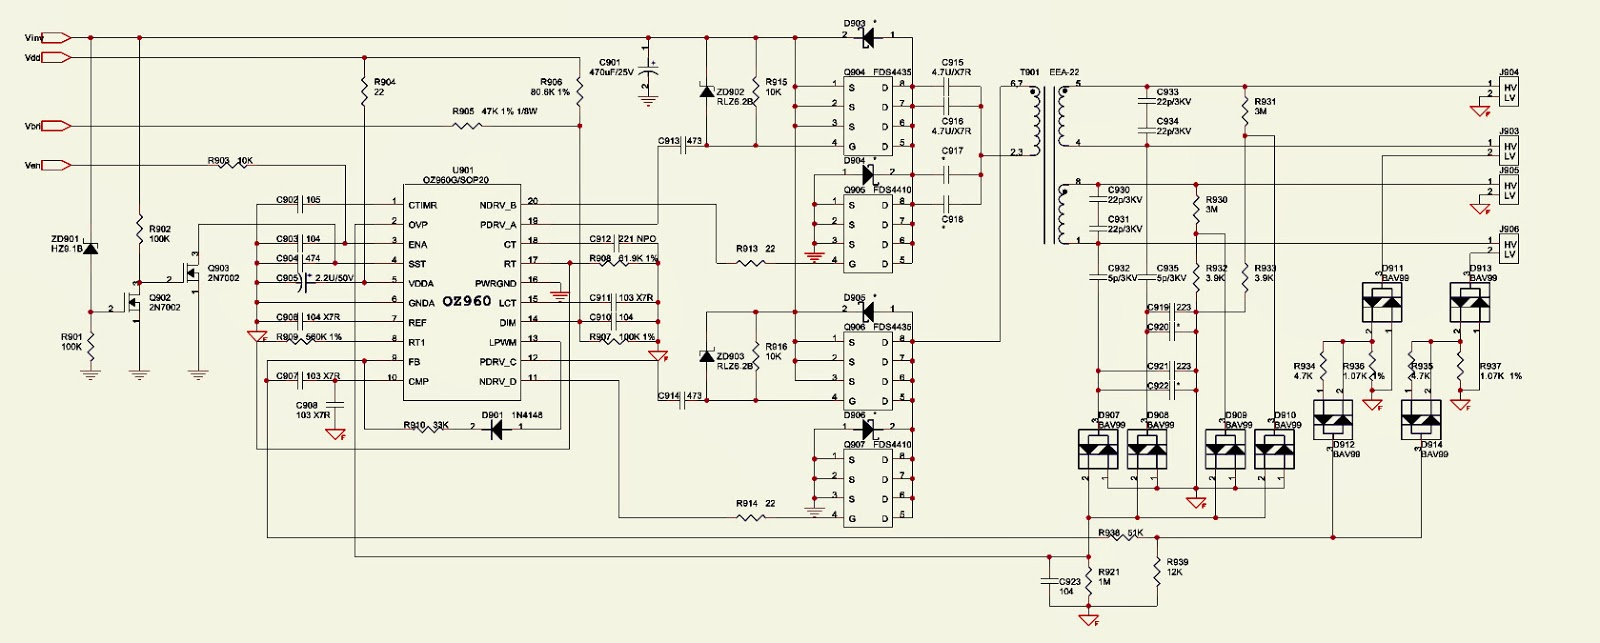 ACER AL1912  MONITOR  SMPS [Power Supply]  SCHEMATIC